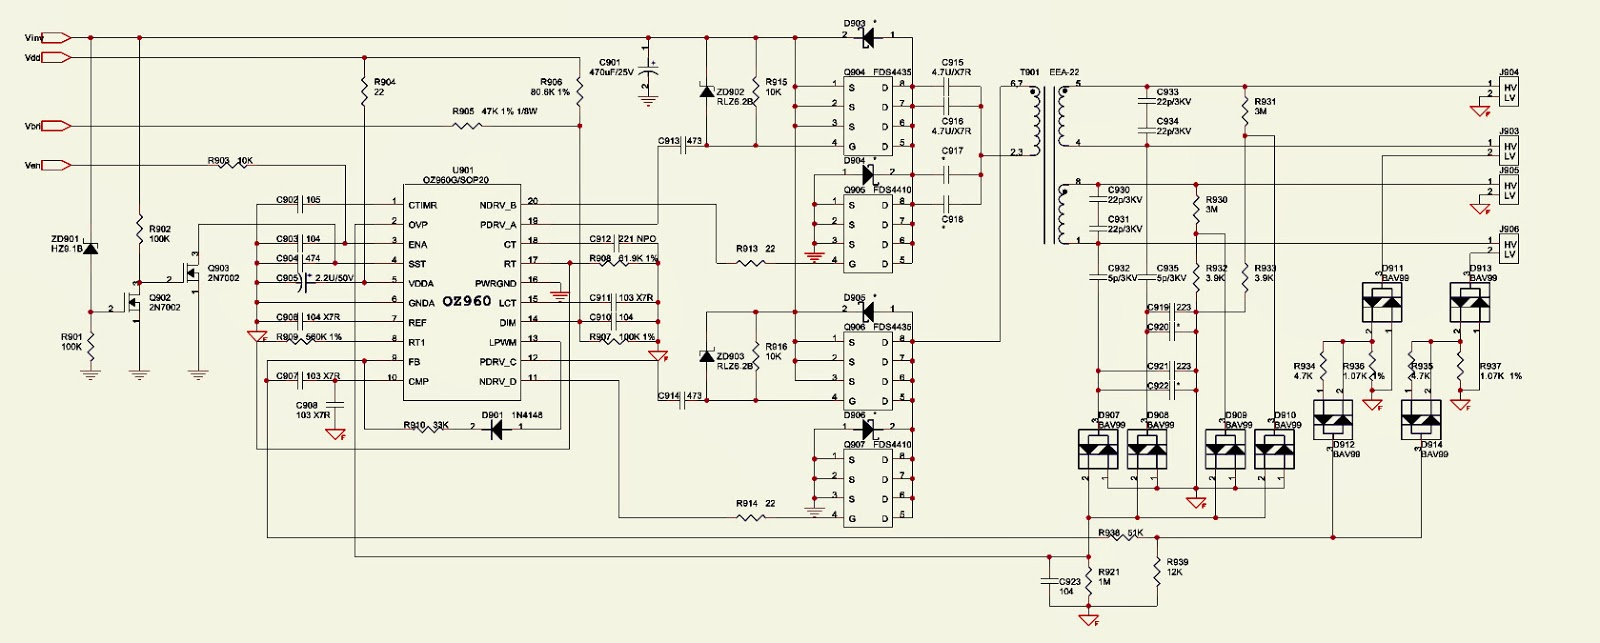 ACER AL1912  MONITOR  SMPS [Power Supply]  SCHEMATIC